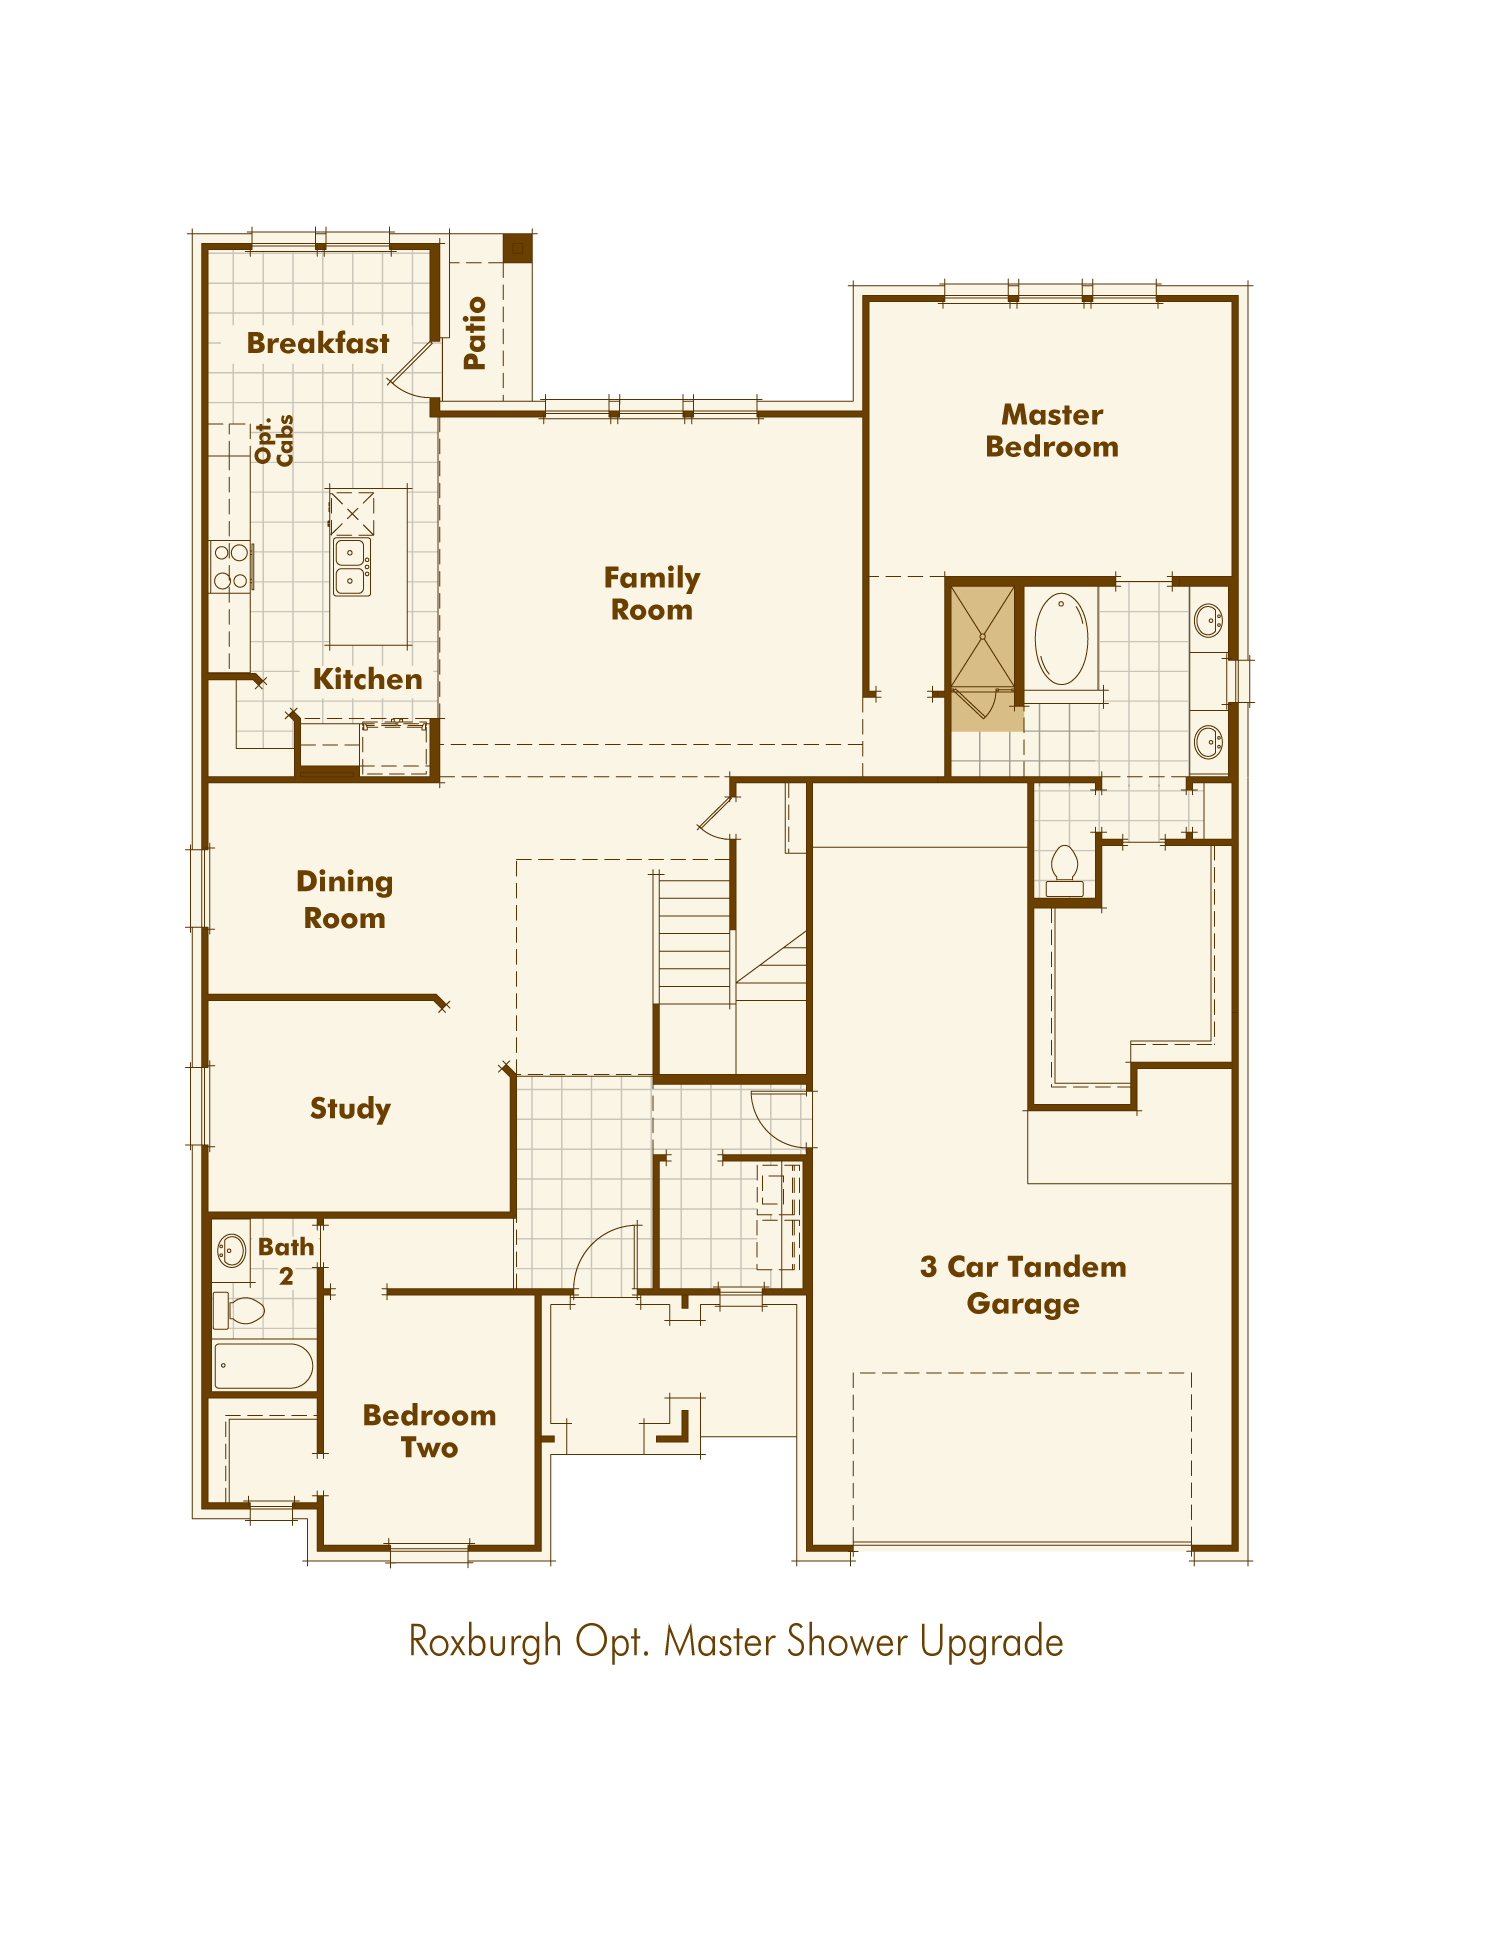 New Home Plan Roxburgh from Highland Homes Ranch Bat House Plan Without Garage on ranch house plans with wrap, ranch house with double front door, ranch style house plans, ranch house front entrance, ranch style modular home plans,